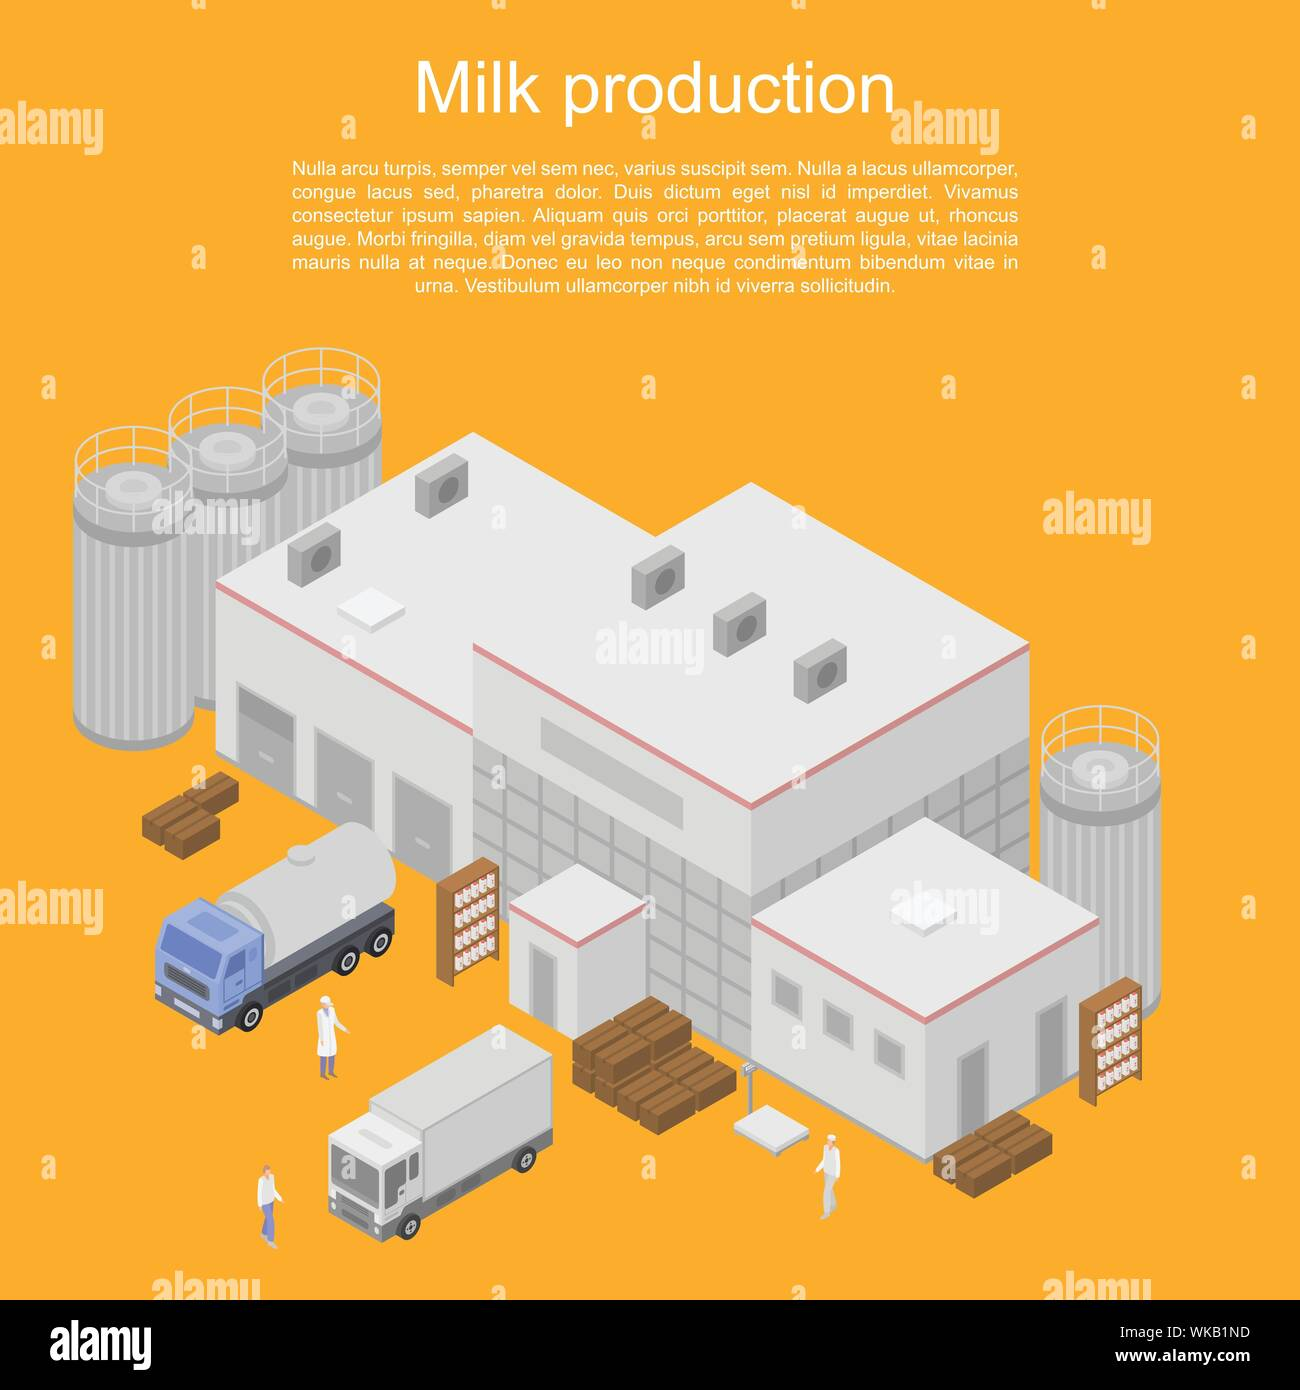 Milk production concept banner, isometric style Stock Vector